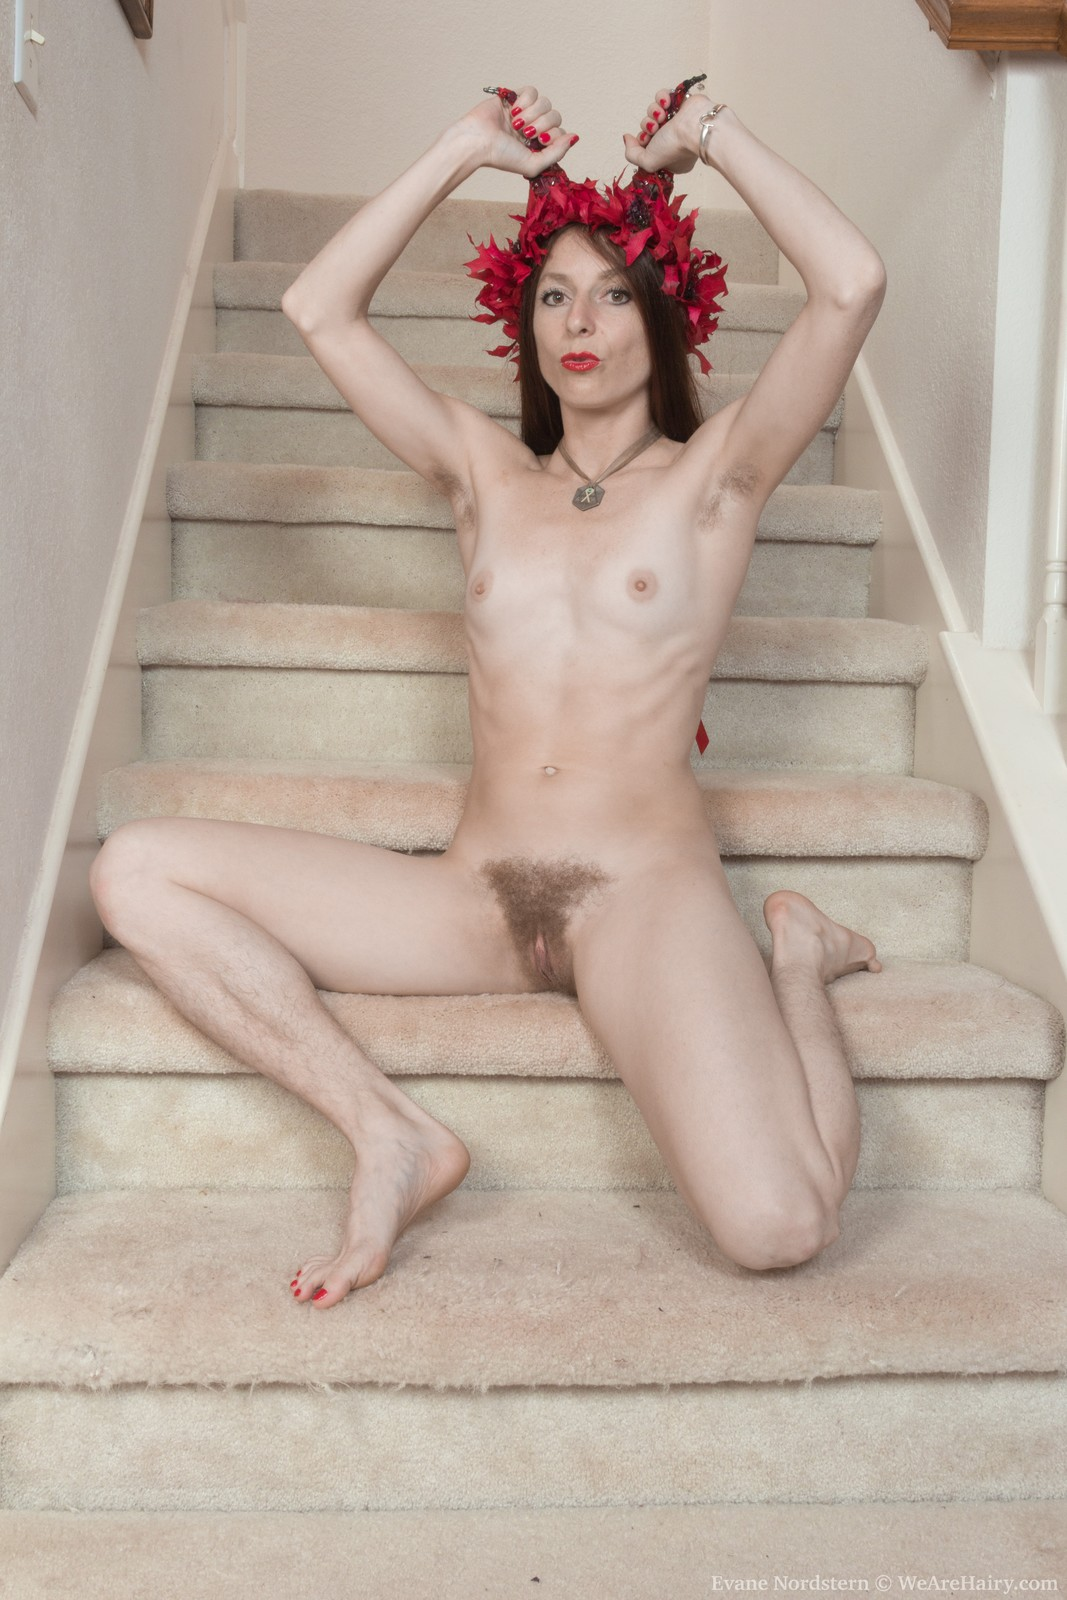 evane-nordstern-strips-naked-on-her-staircase13.jpg